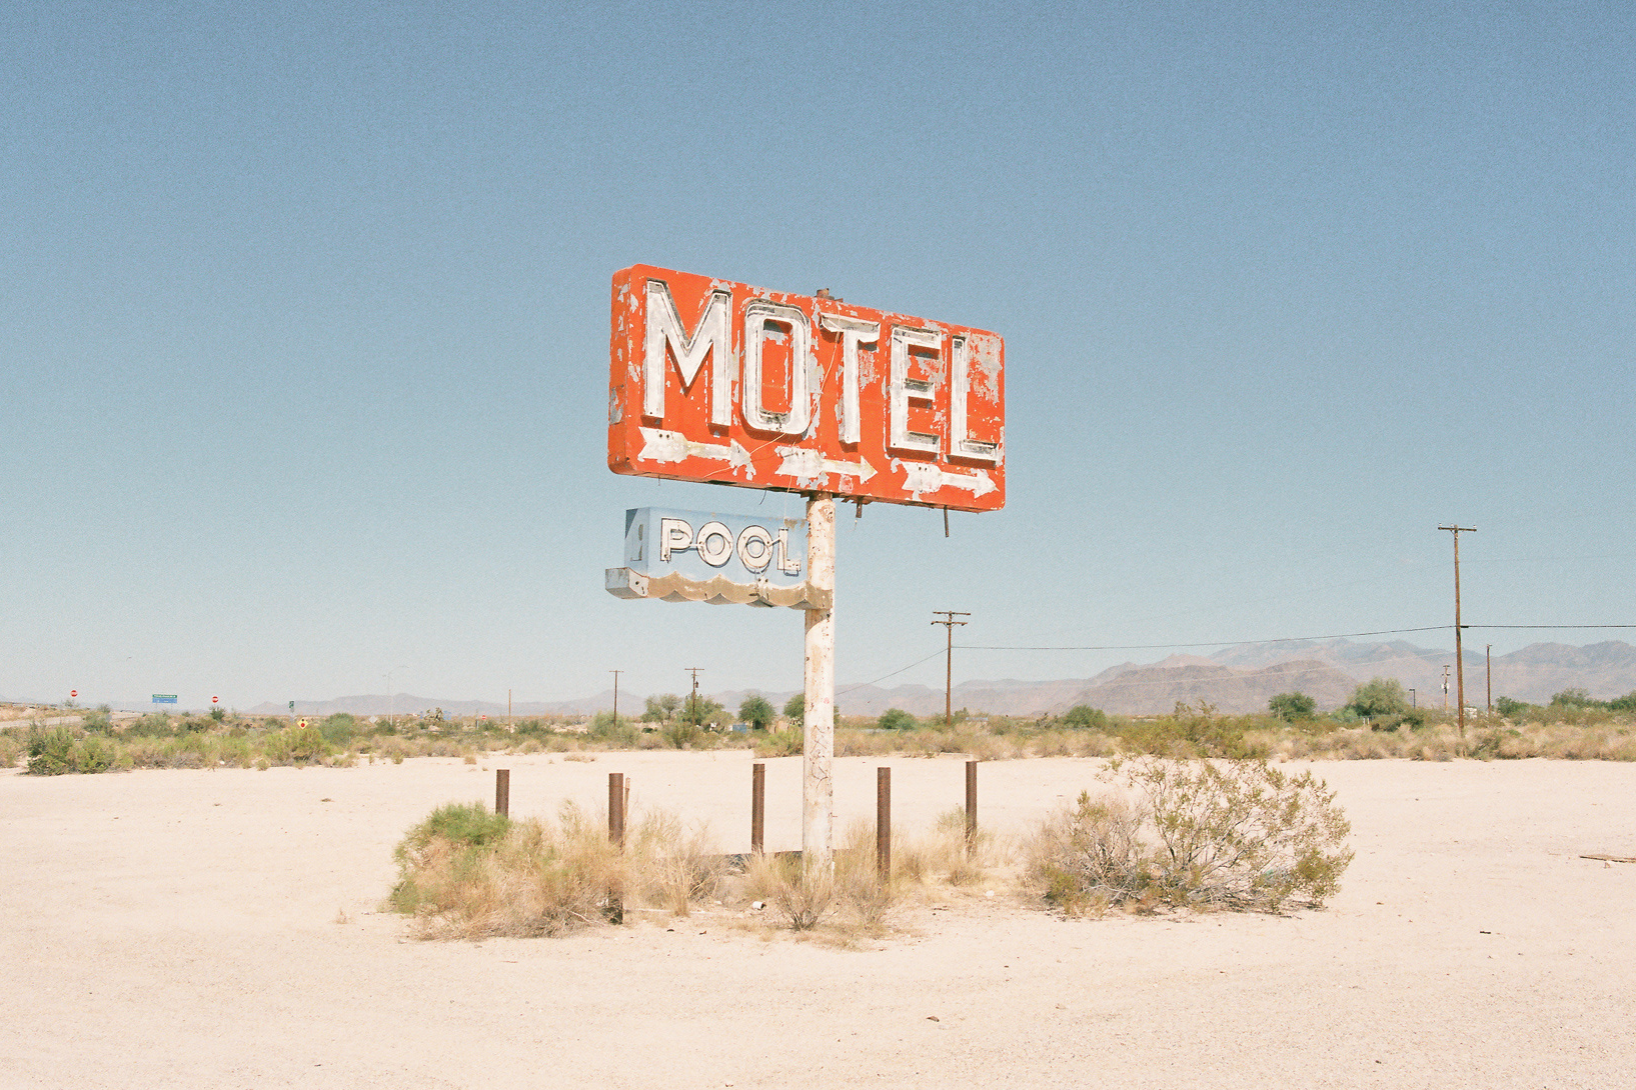 Photography by Kyle McDougall - Check it out here